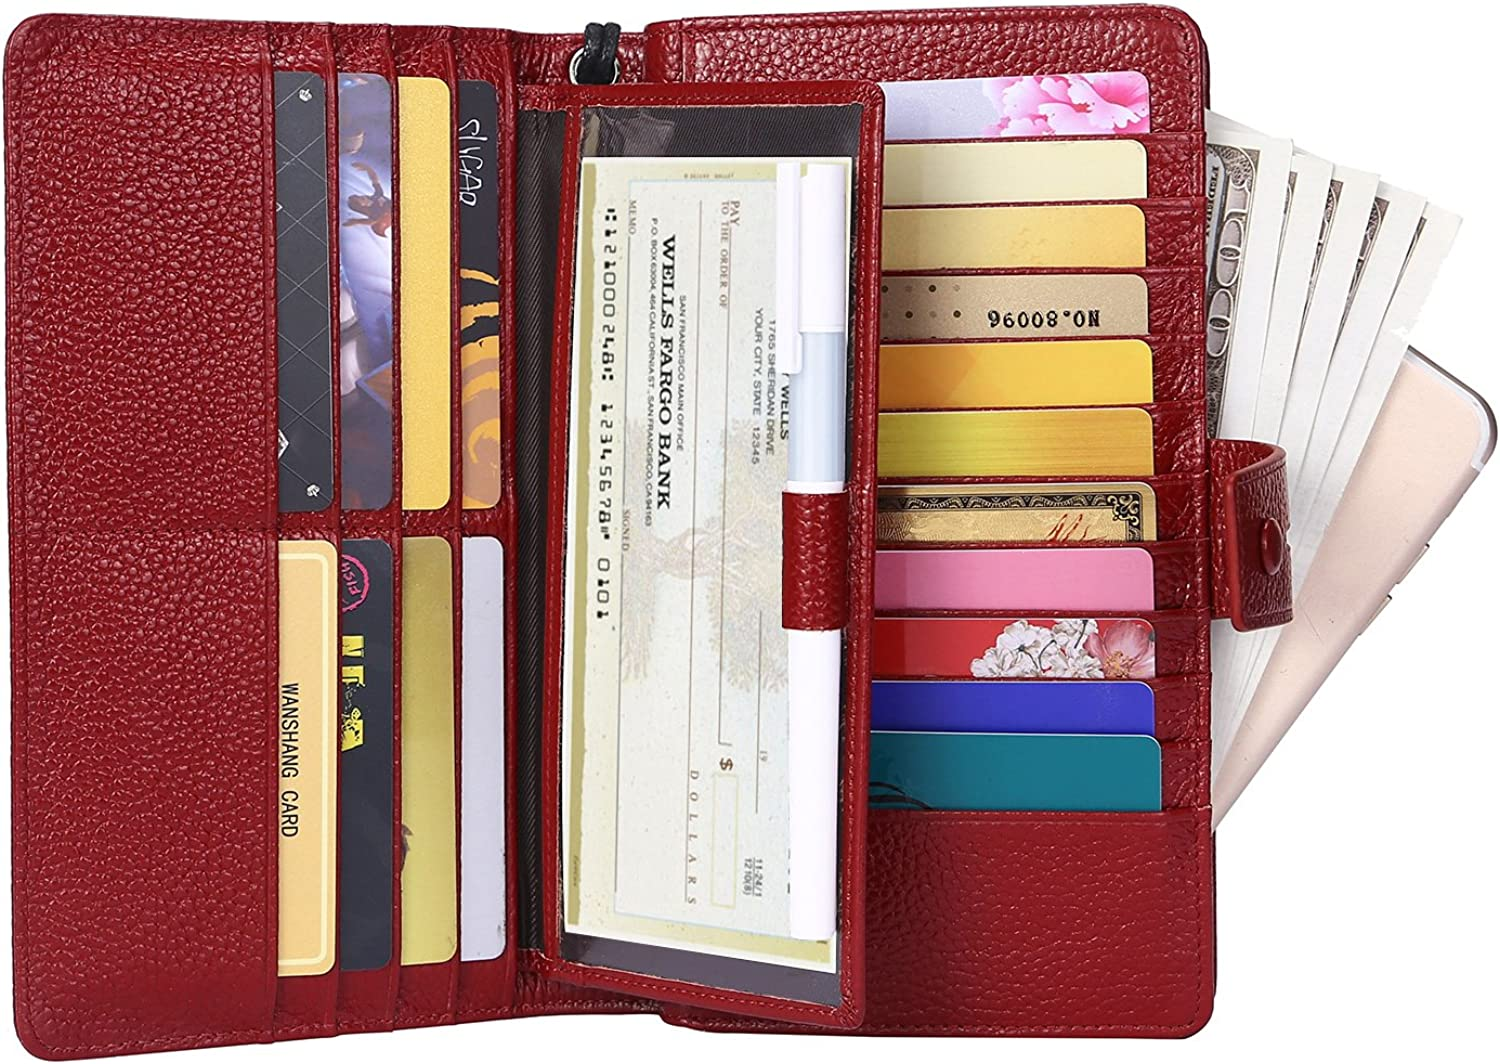 AINIMOER Women's Big RFID Blocking Leather Zip Around Wallets for Womens Clutch Organizer Checkbook Holder Large Travel Purse